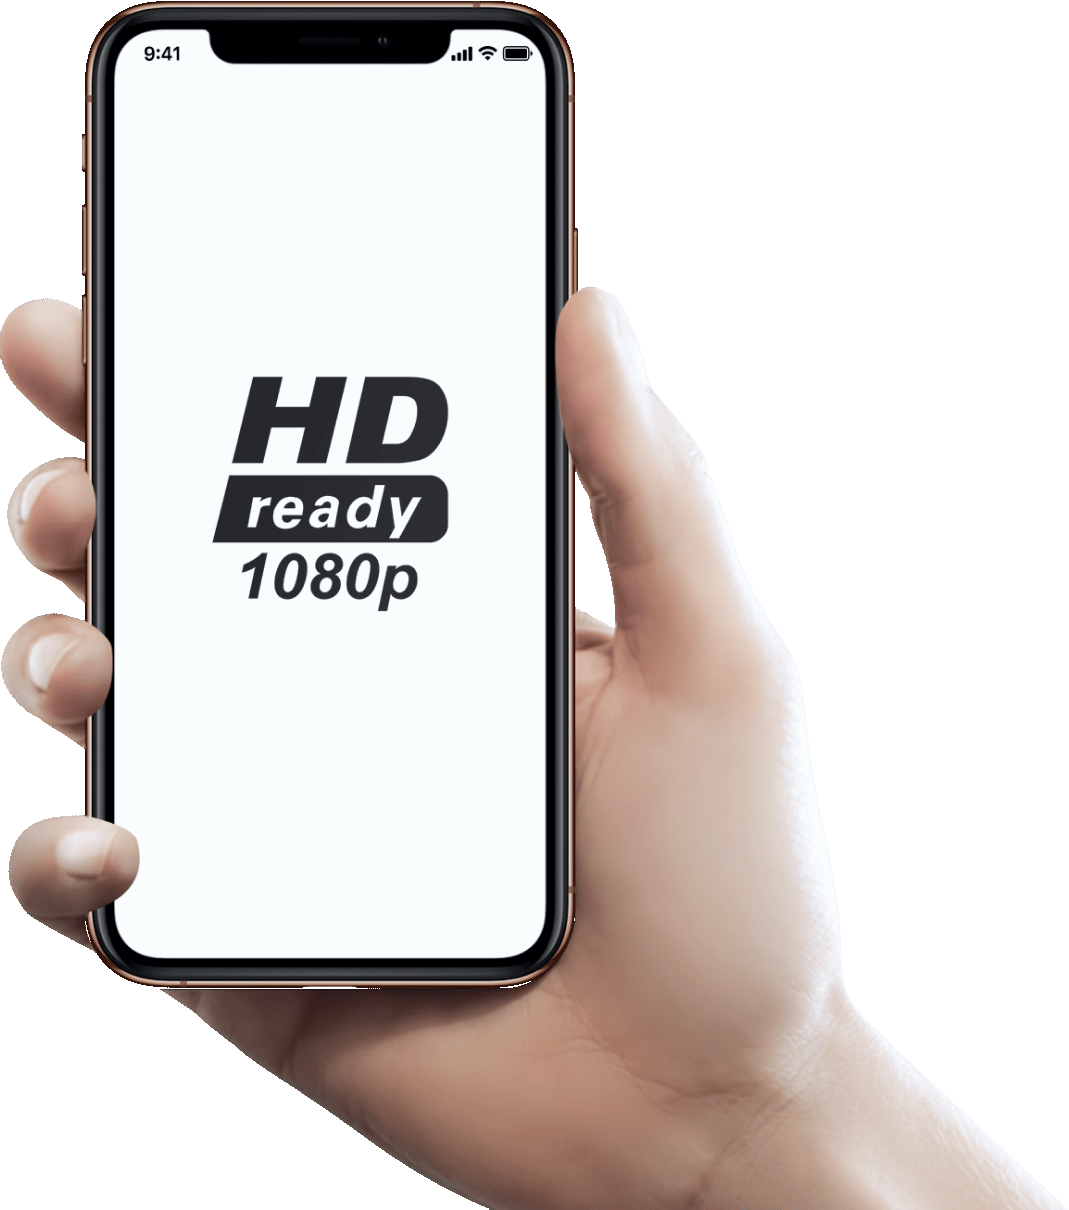 Conduct an online seminar with Full HD video quality